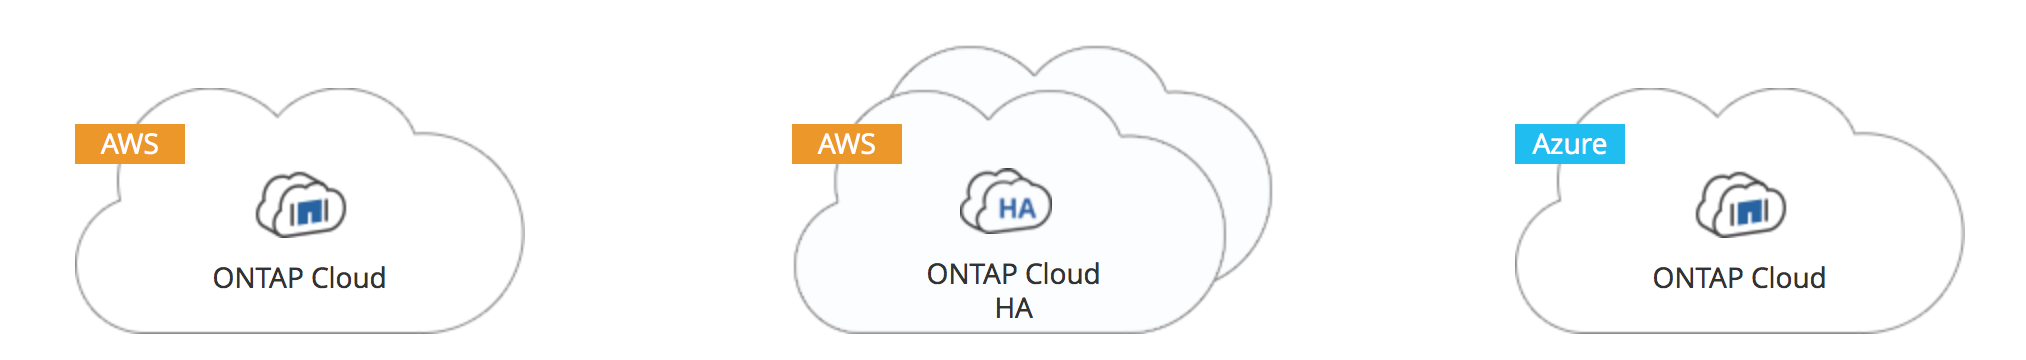 Introduction to ONTAP Cloud